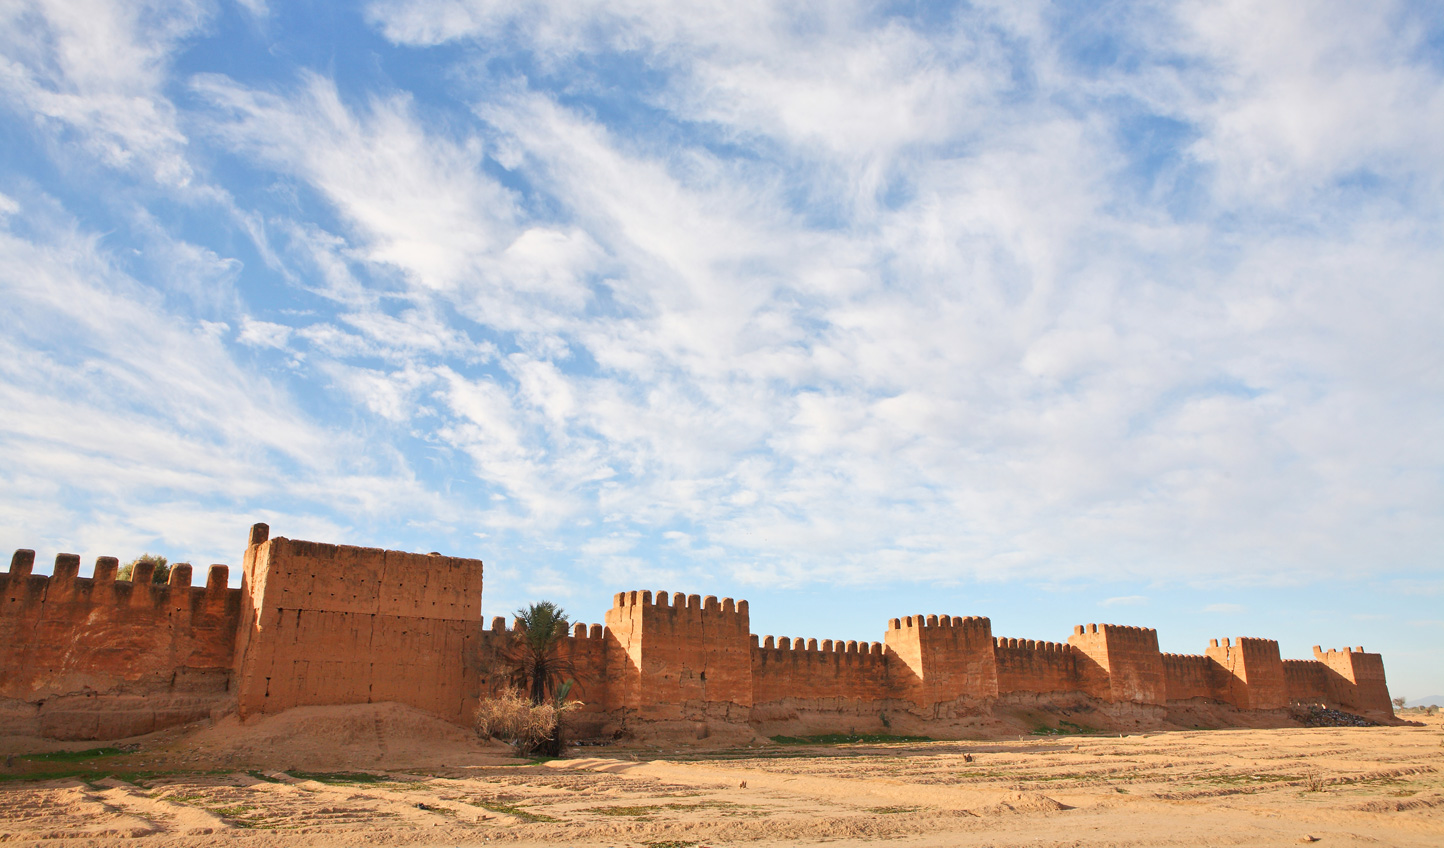 Go behind the ramparts at Taroudant